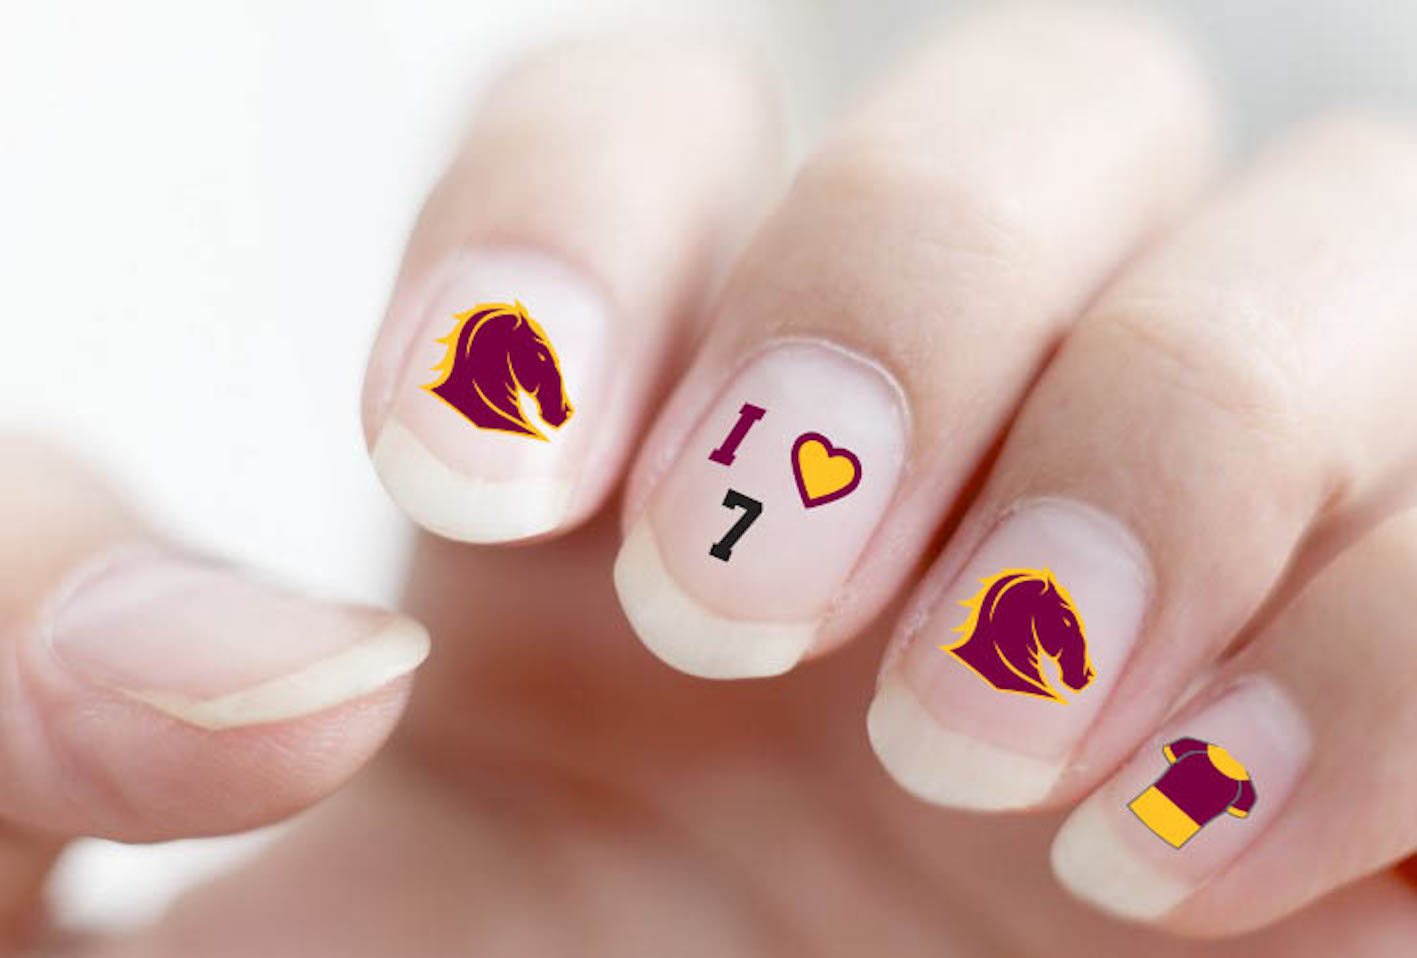 NRL Nail Art Decal Stickers For Gel or Polished Nails - Select Team ...